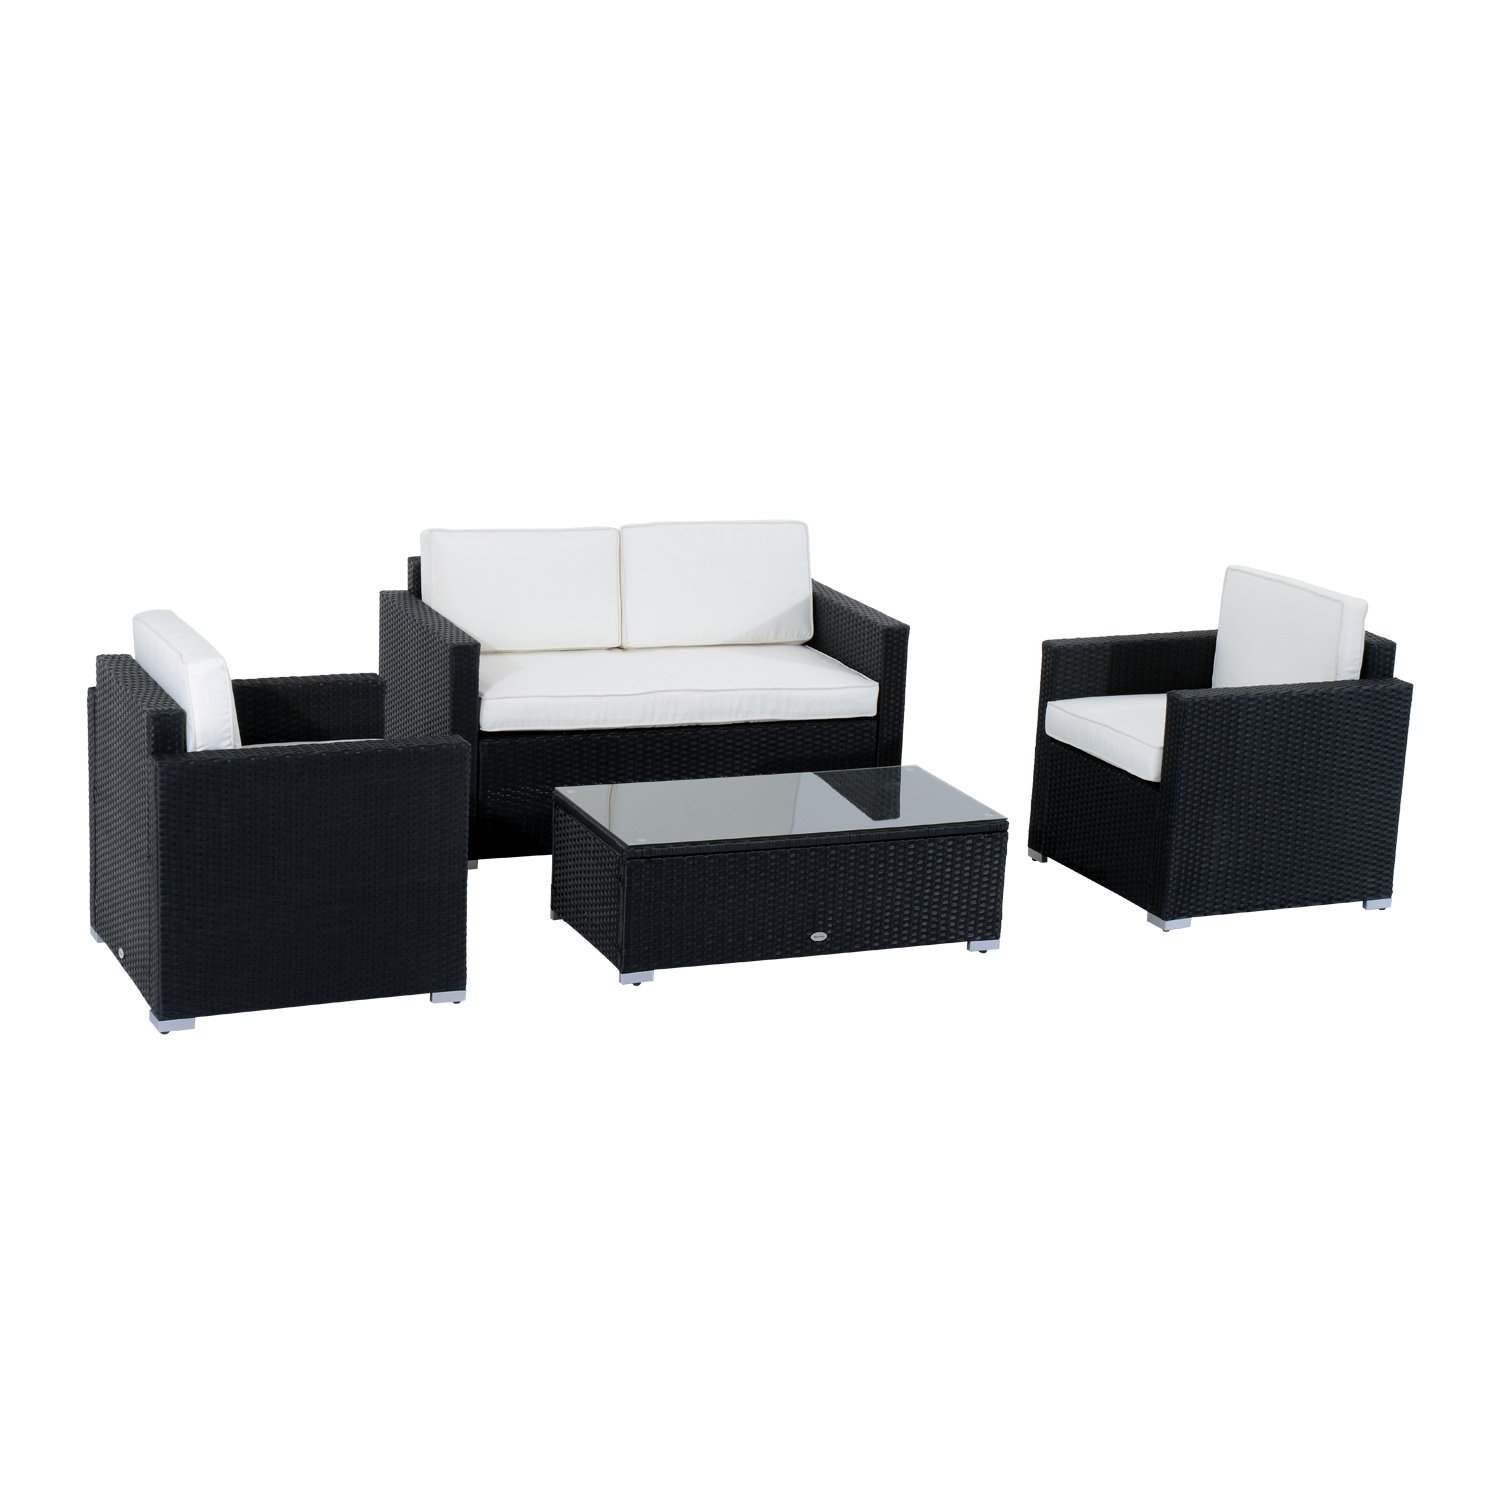 Outsunny Modern 4 Piece Cushioned Outdoor Rattan Wicker Sofa Sectional Patio Conversation Furniture Set